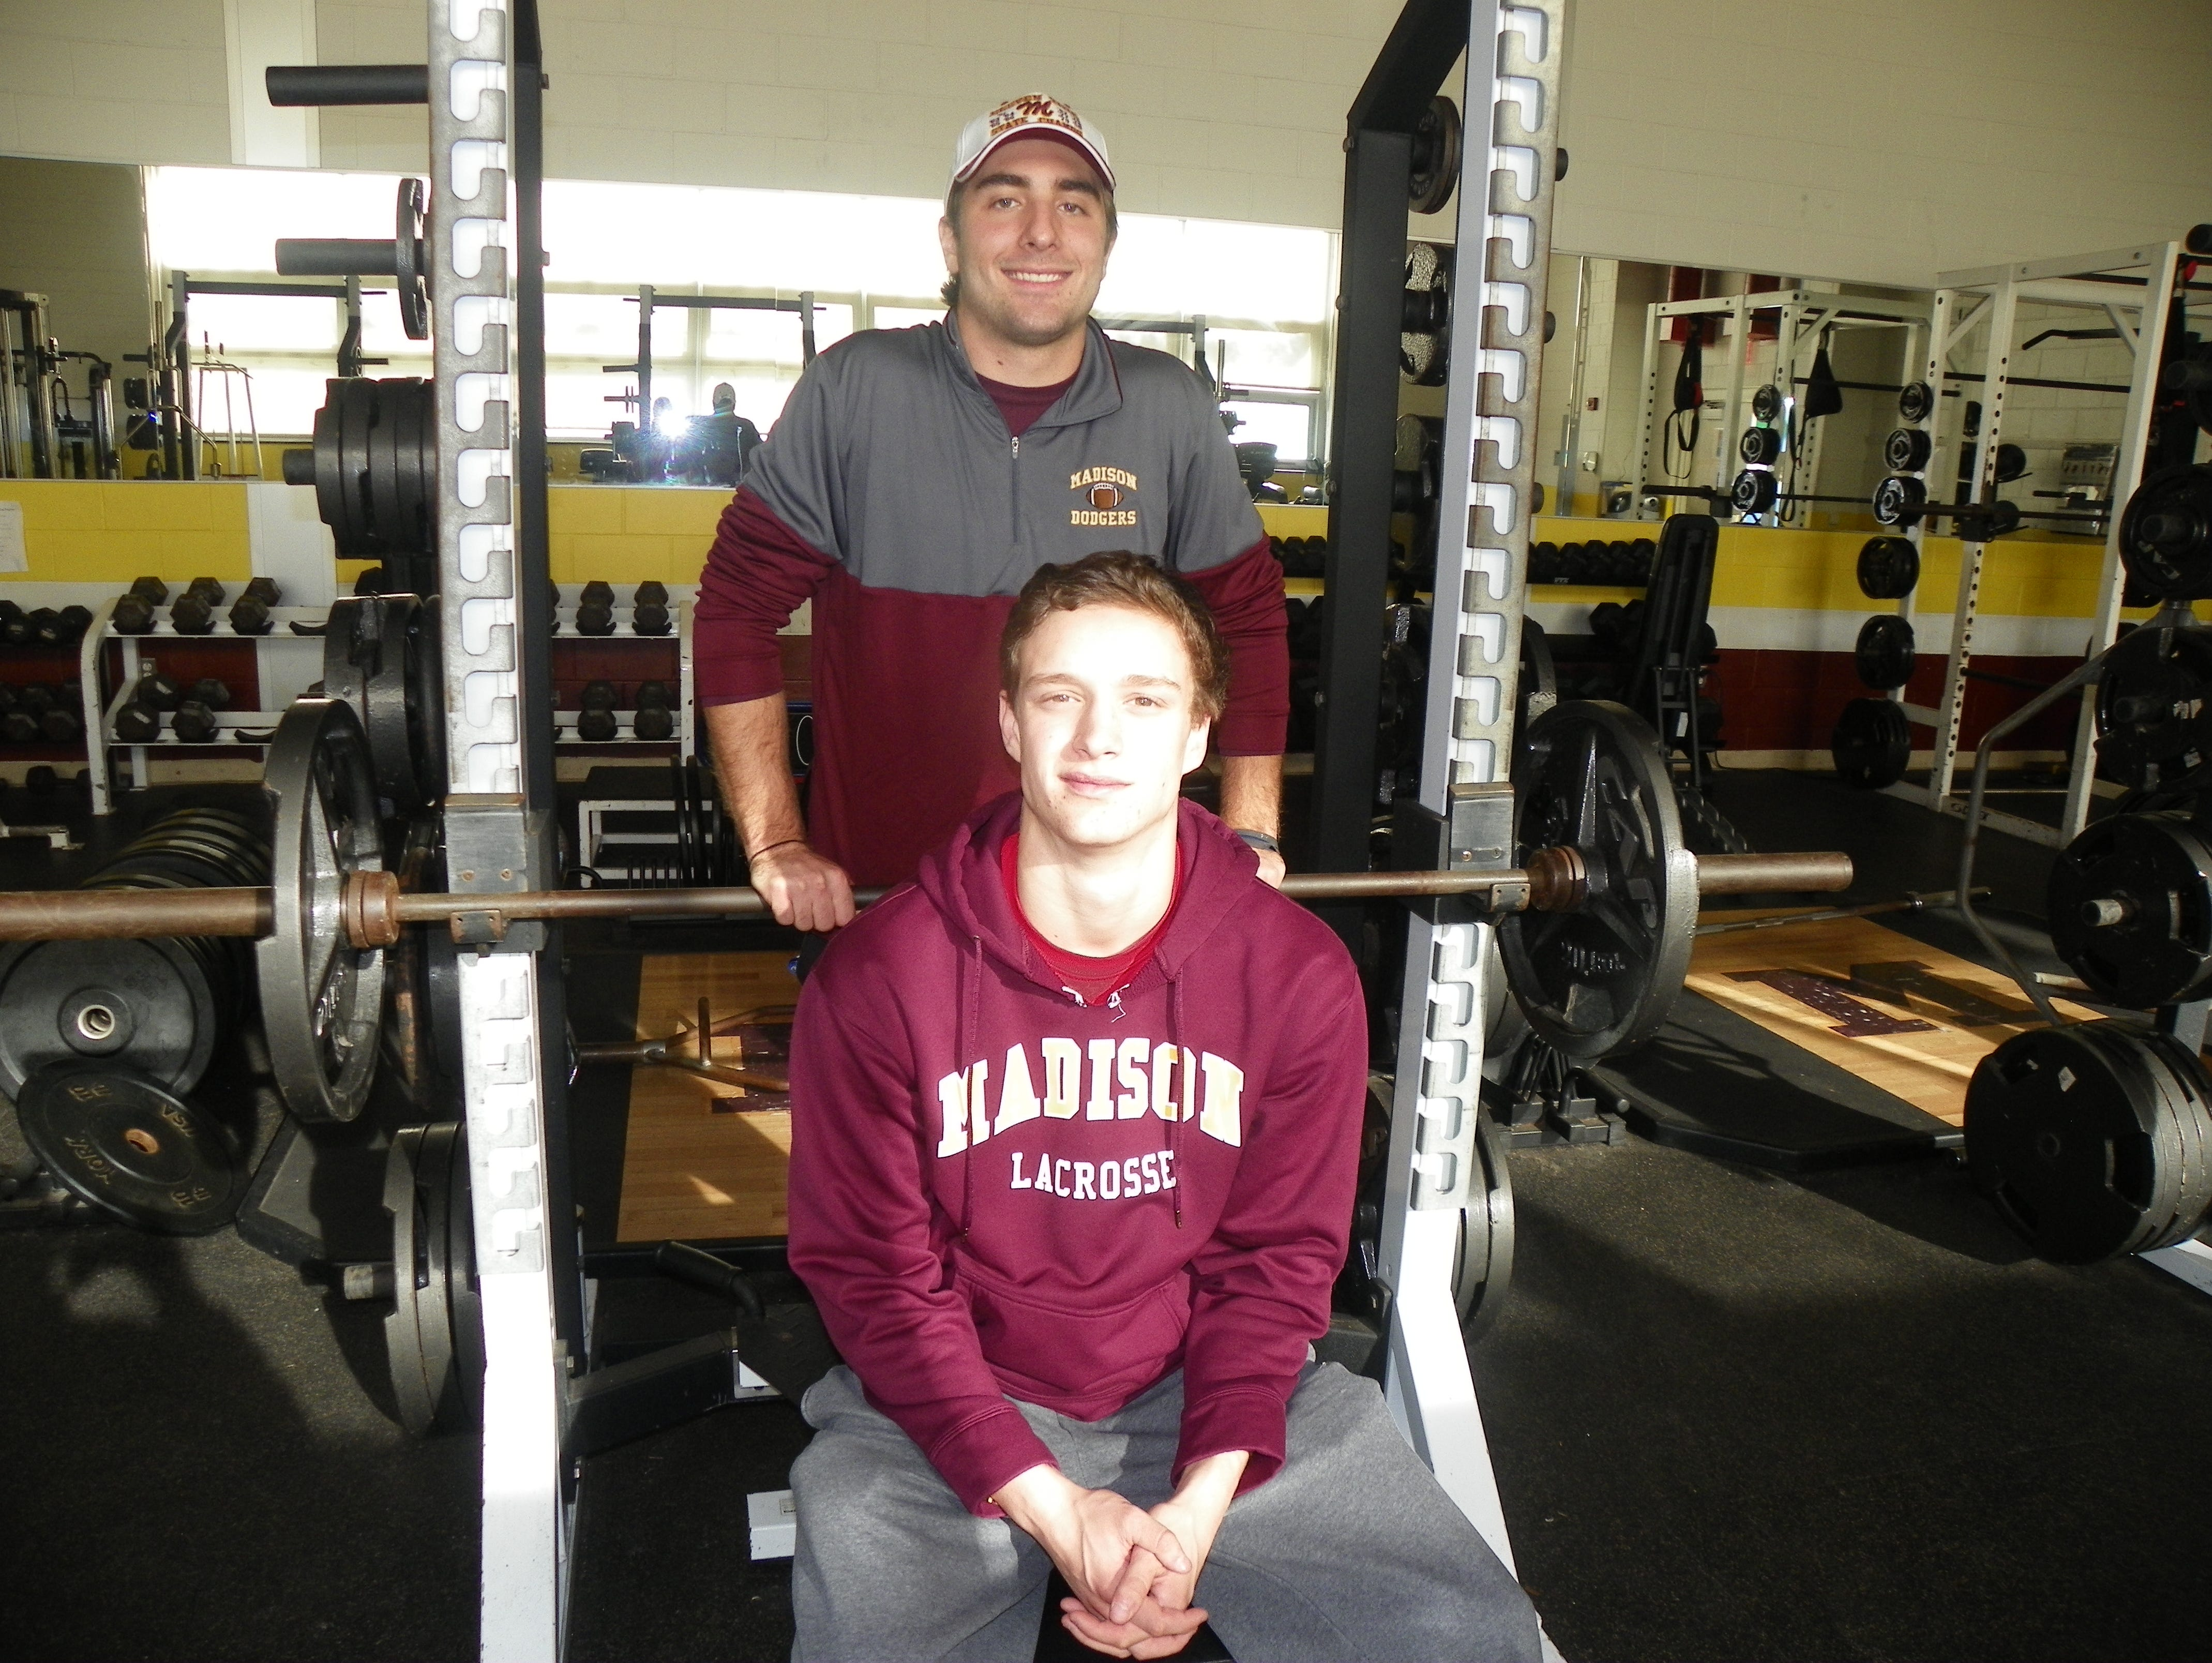 The Dalena cousins, namely Justin (standing) and Mike (seated), have played major roles in Madison reaching the NJSIAA North 2 Group II championship game Thursday at MetLife Stadium.